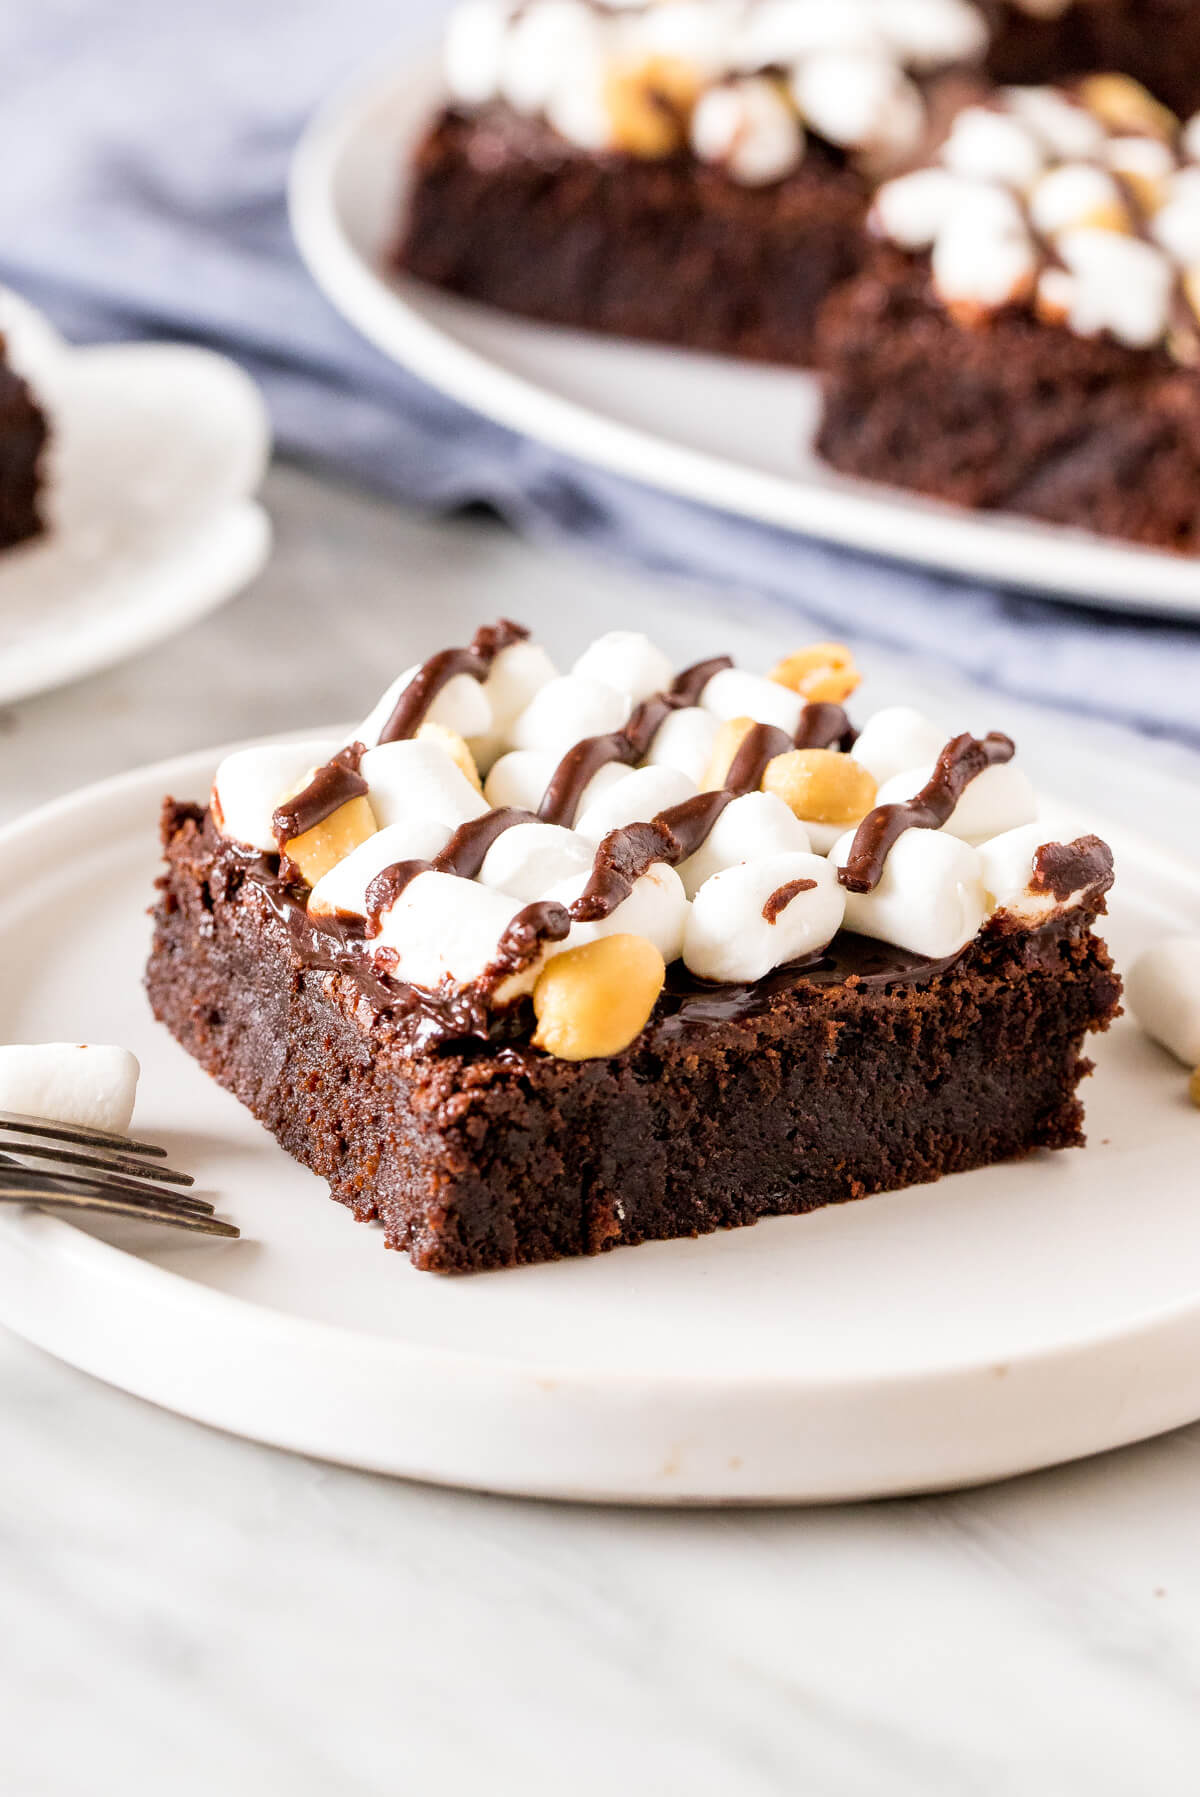 A rocky road brownie with marshmallows and peanuts on a plate.